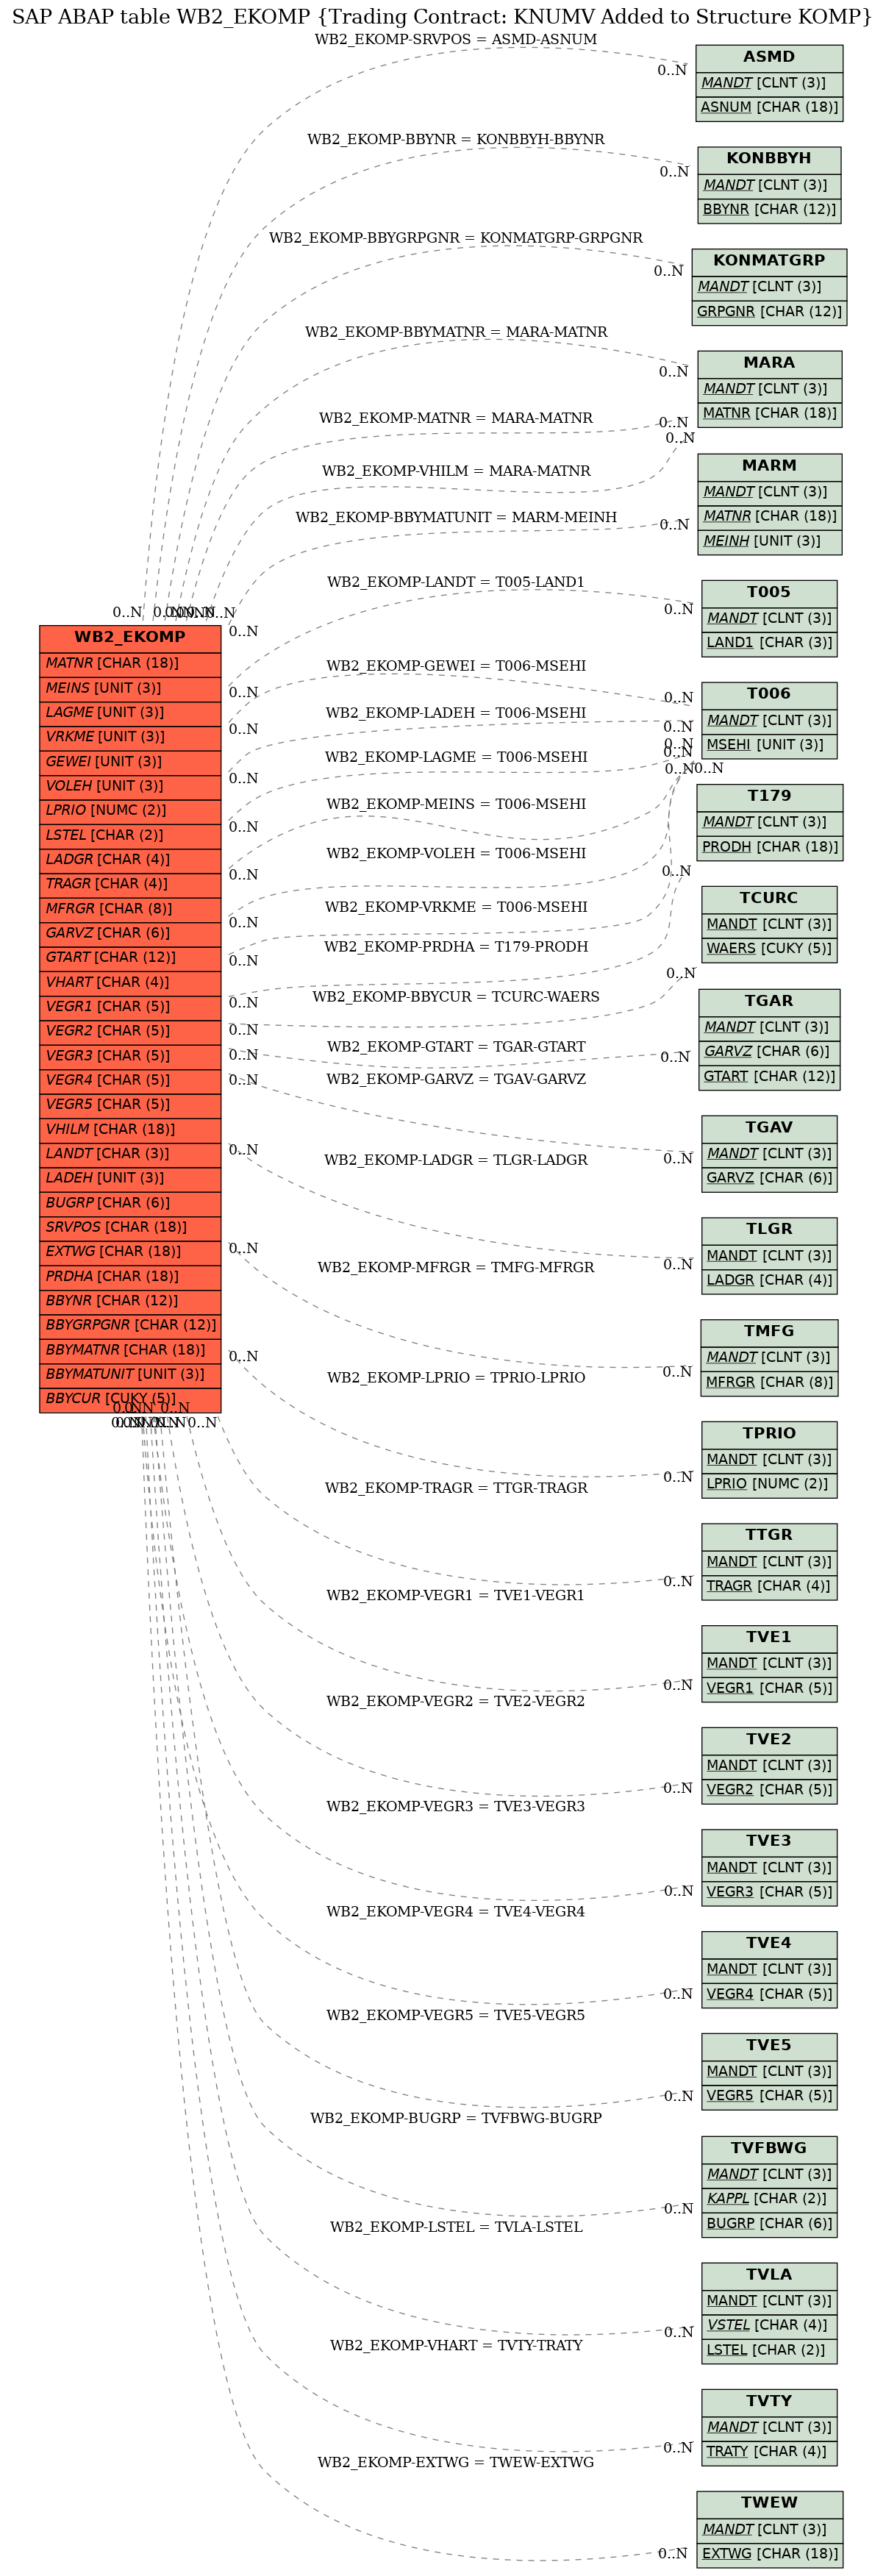 E-R Diagram for table WB2_EKOMP (Trading Contract: KNUMV Added to Structure KOMP)